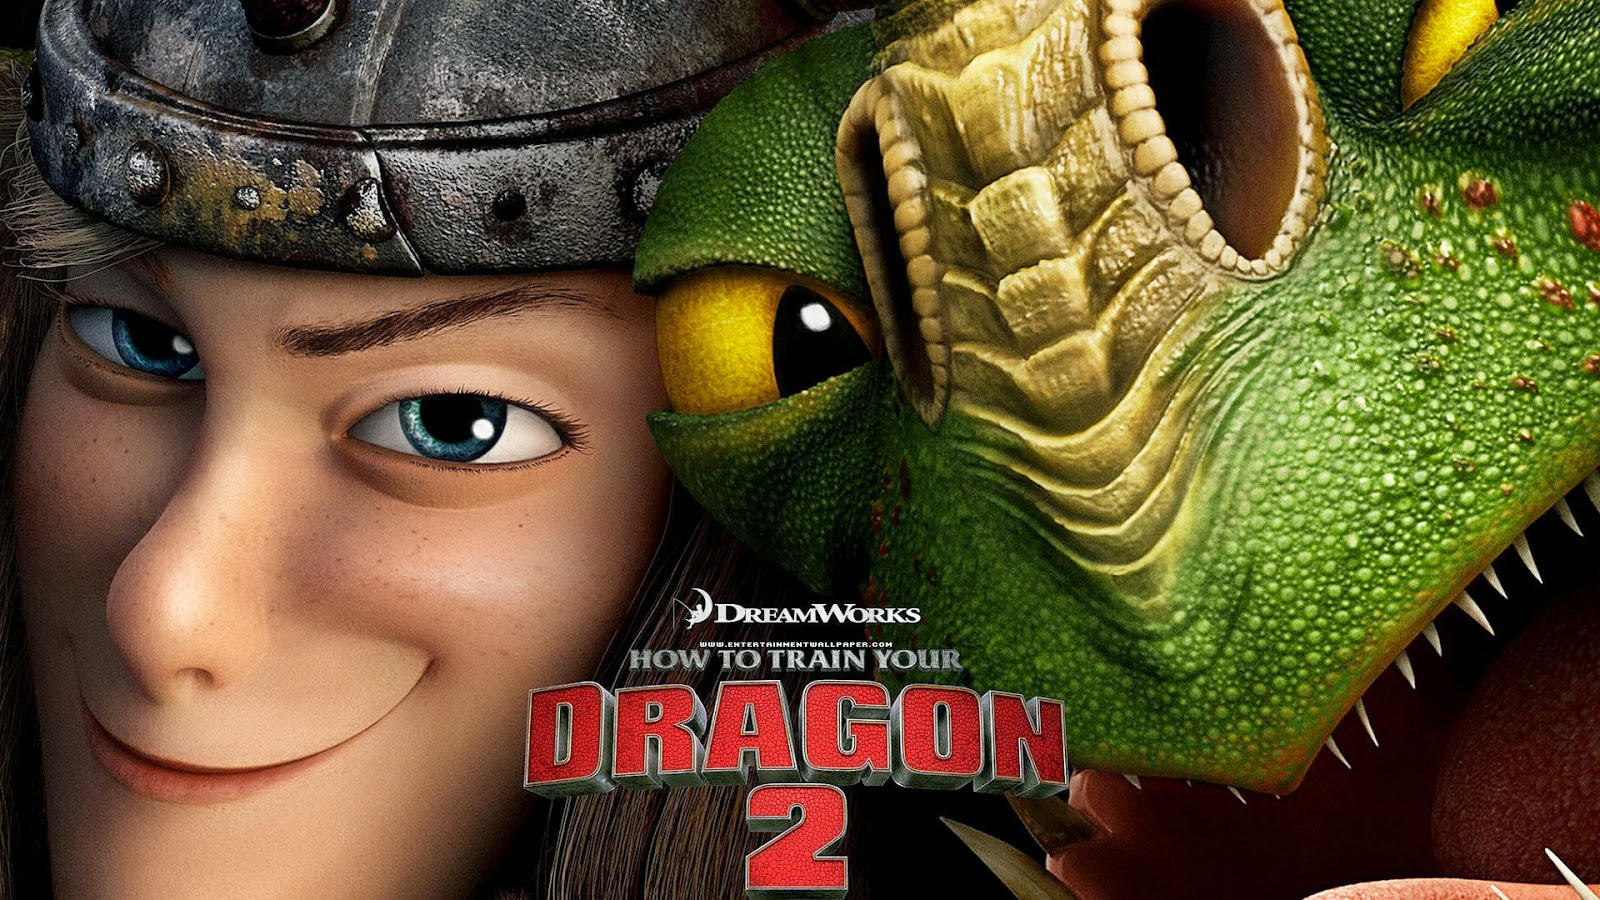 Dragon 2 movie full yes man subtitles english online how to train your dragon 2 movie review 2014 roger ebert ccuart Images